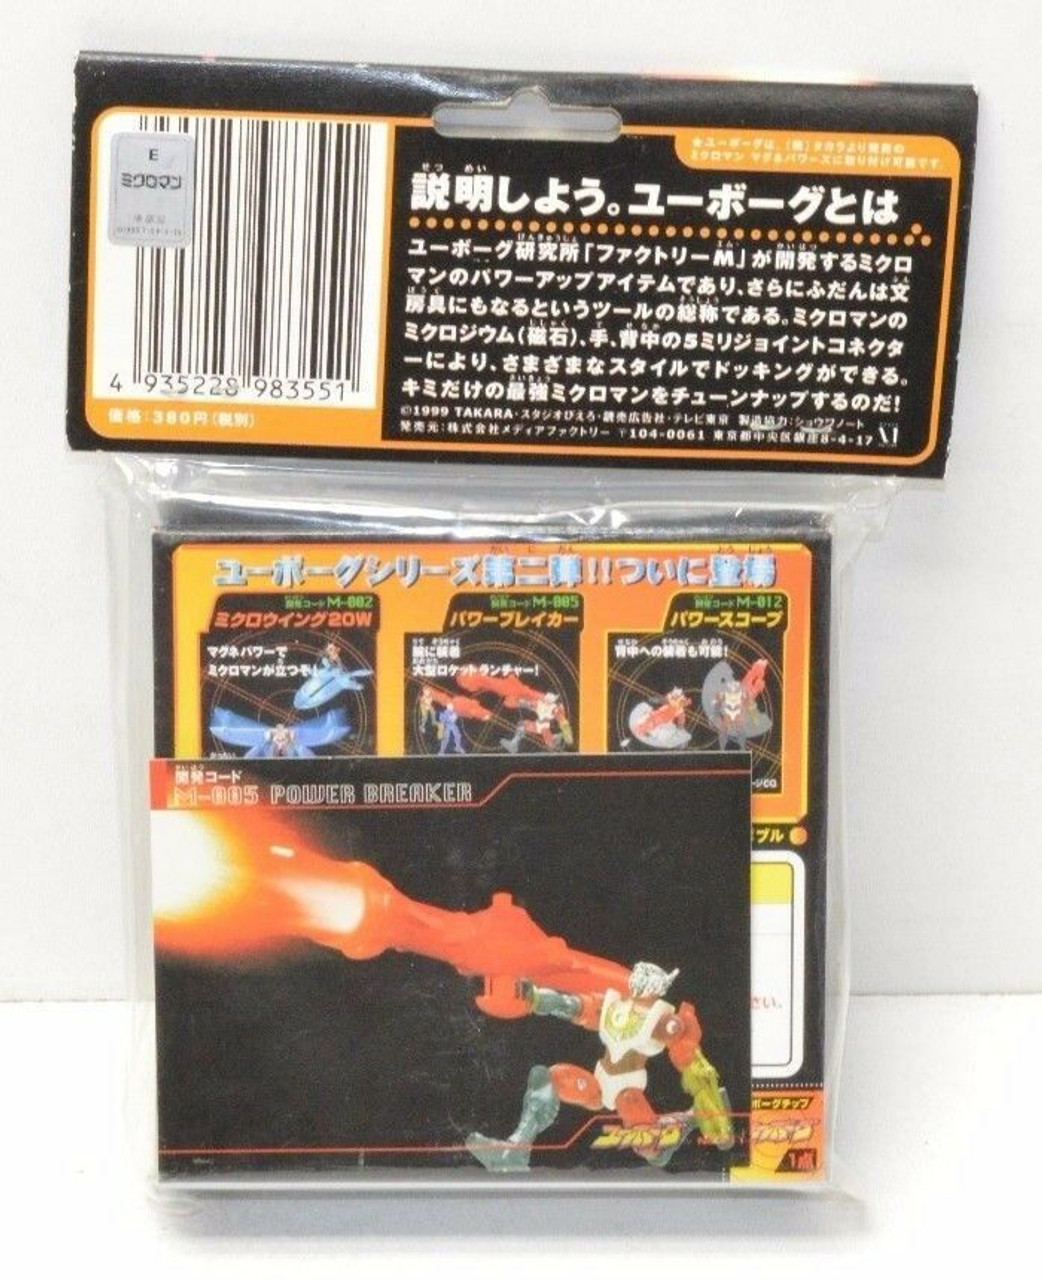 Microman M-005 Power Breaker Attachment Add On by Takara Toys